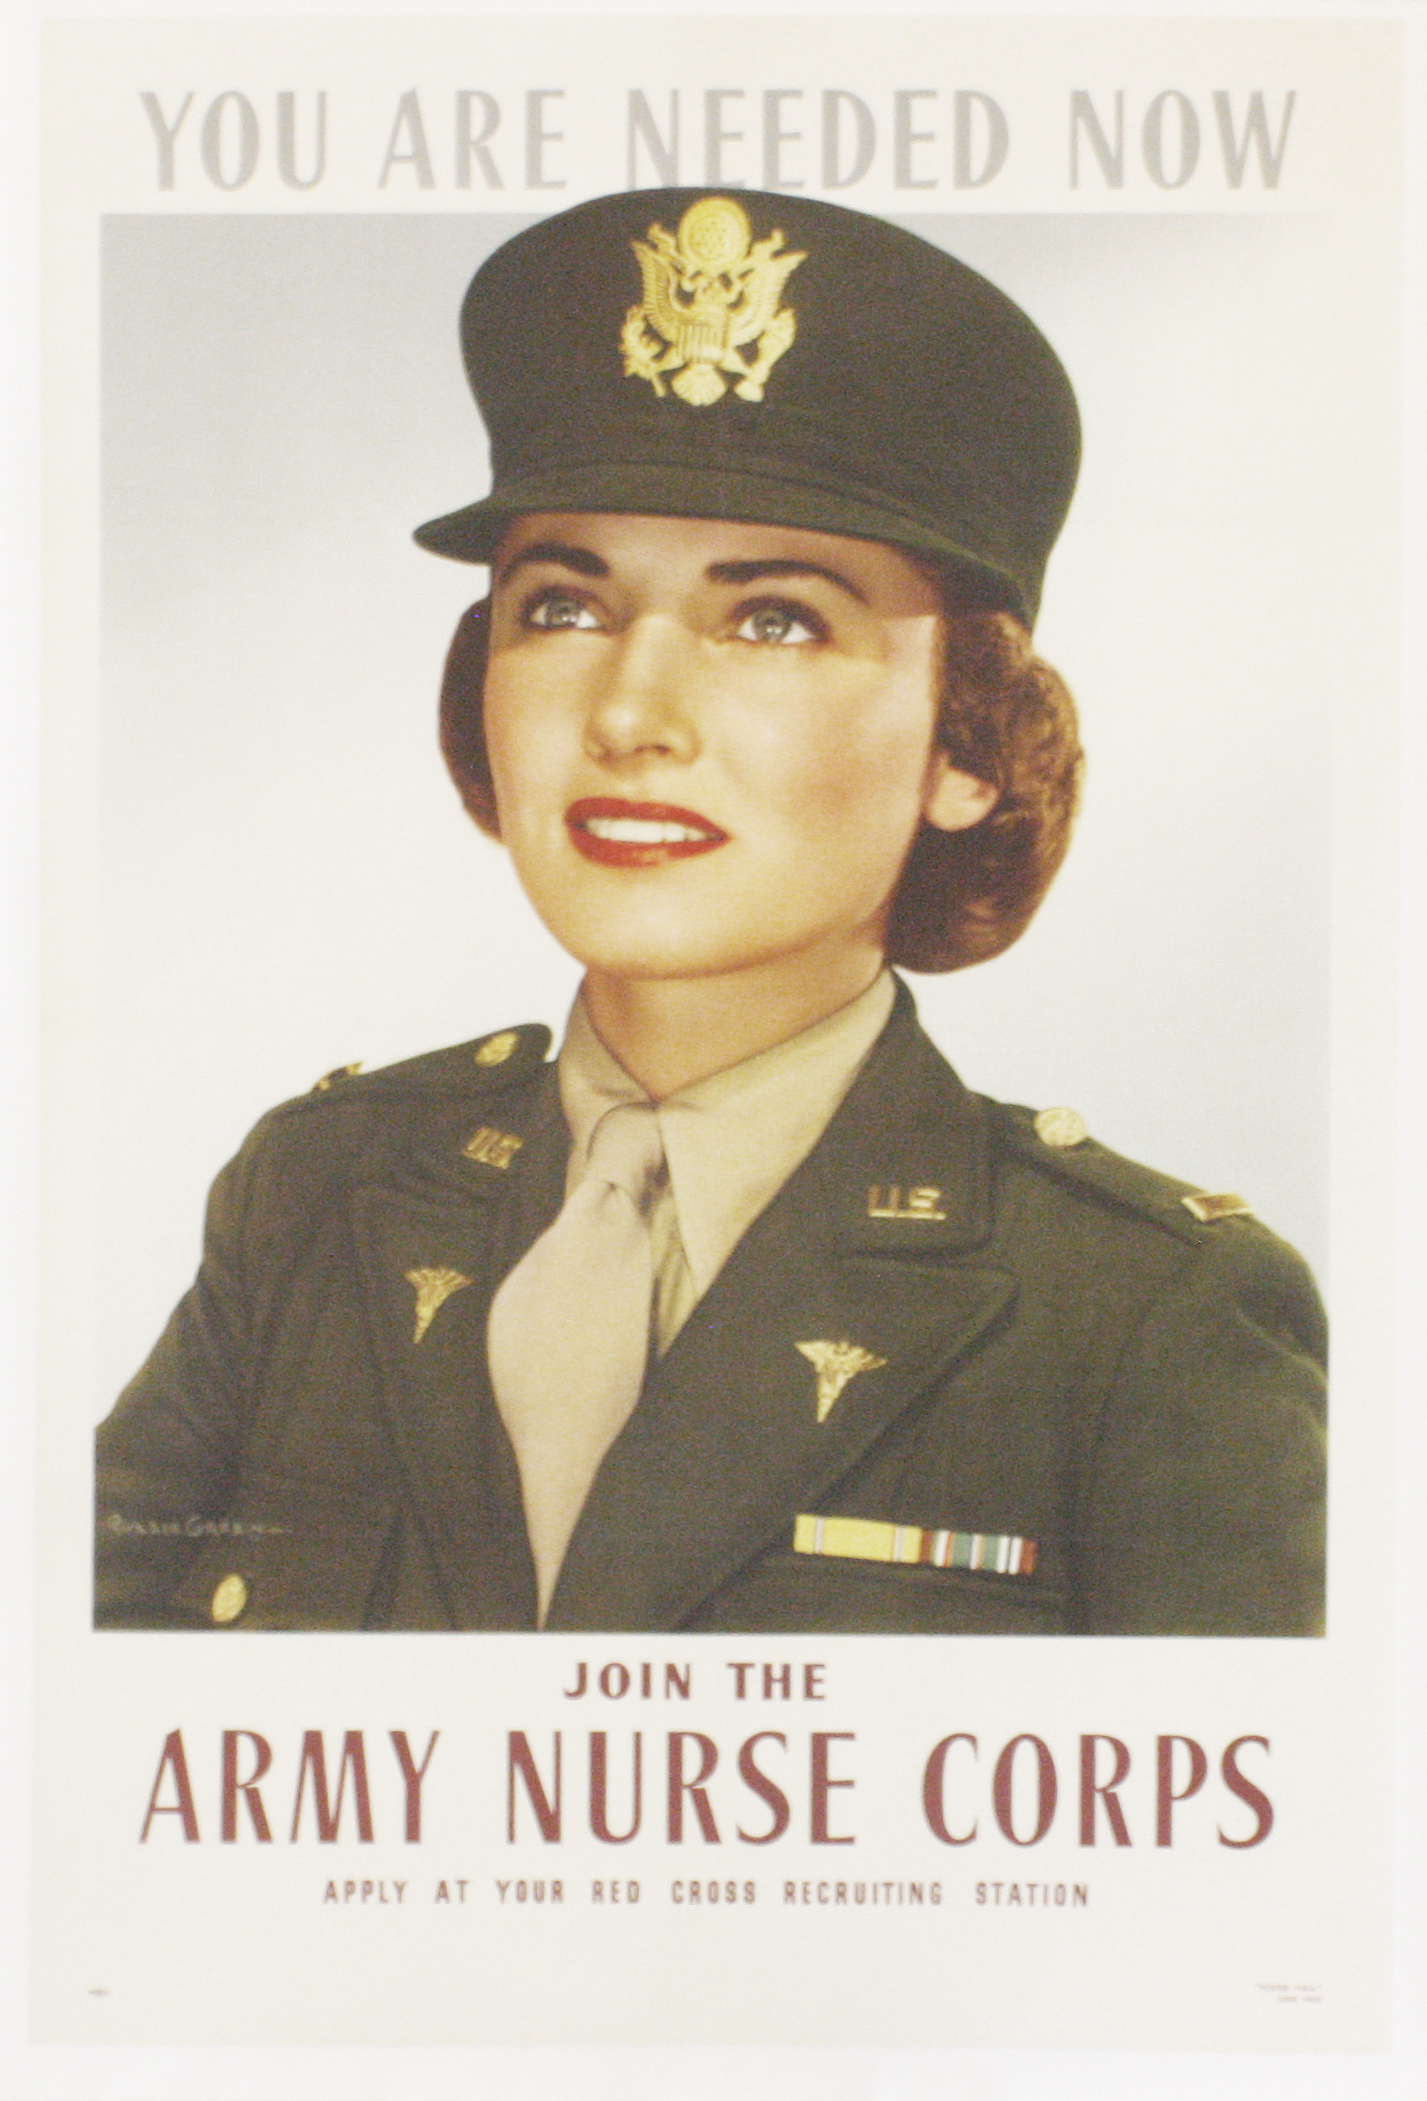 Army Nurse Corps poster from 1943